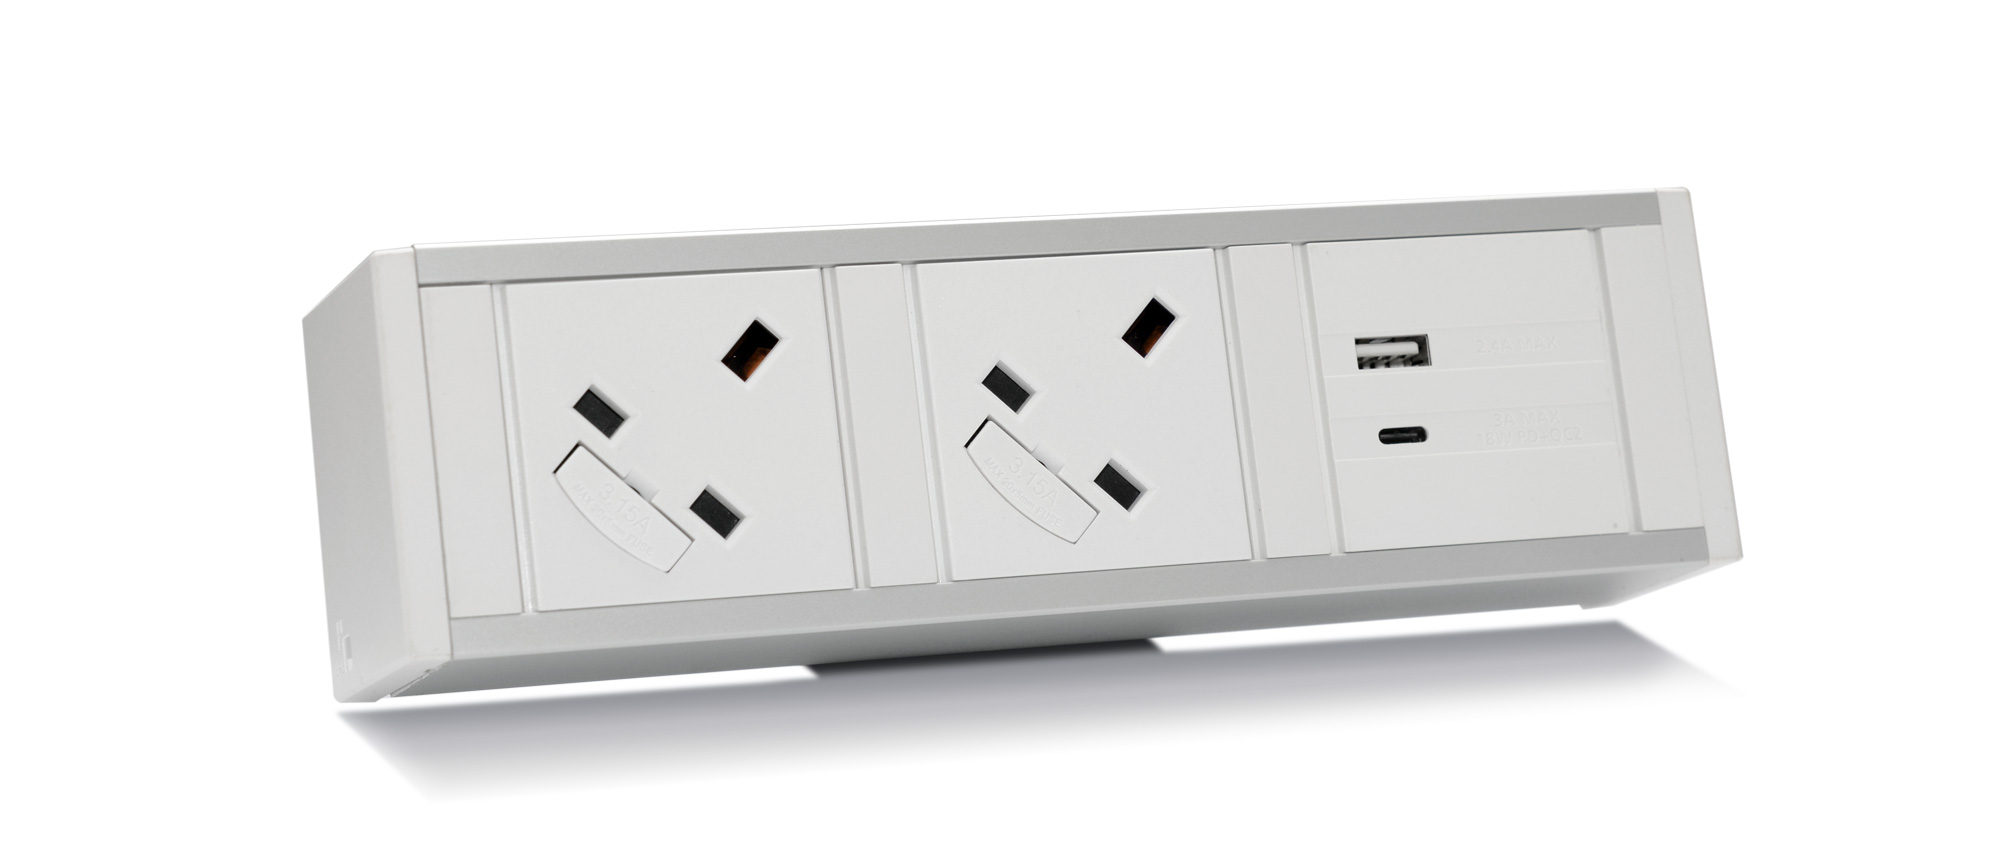 Linear Power, USB Charging, Data & Media